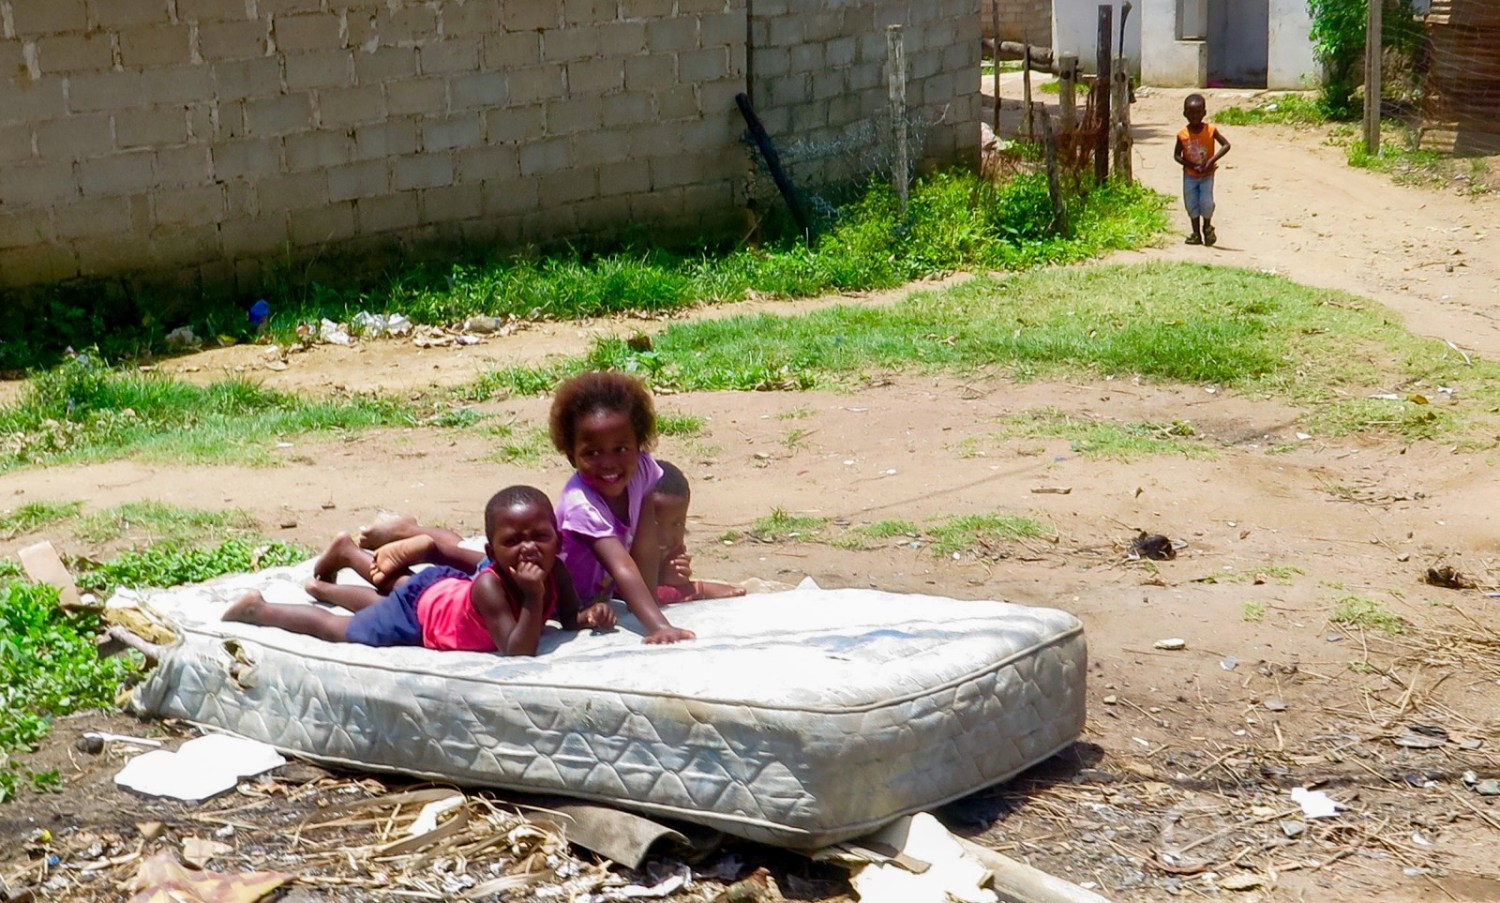 Children playing on a mattress at an informal settlement in Durban.